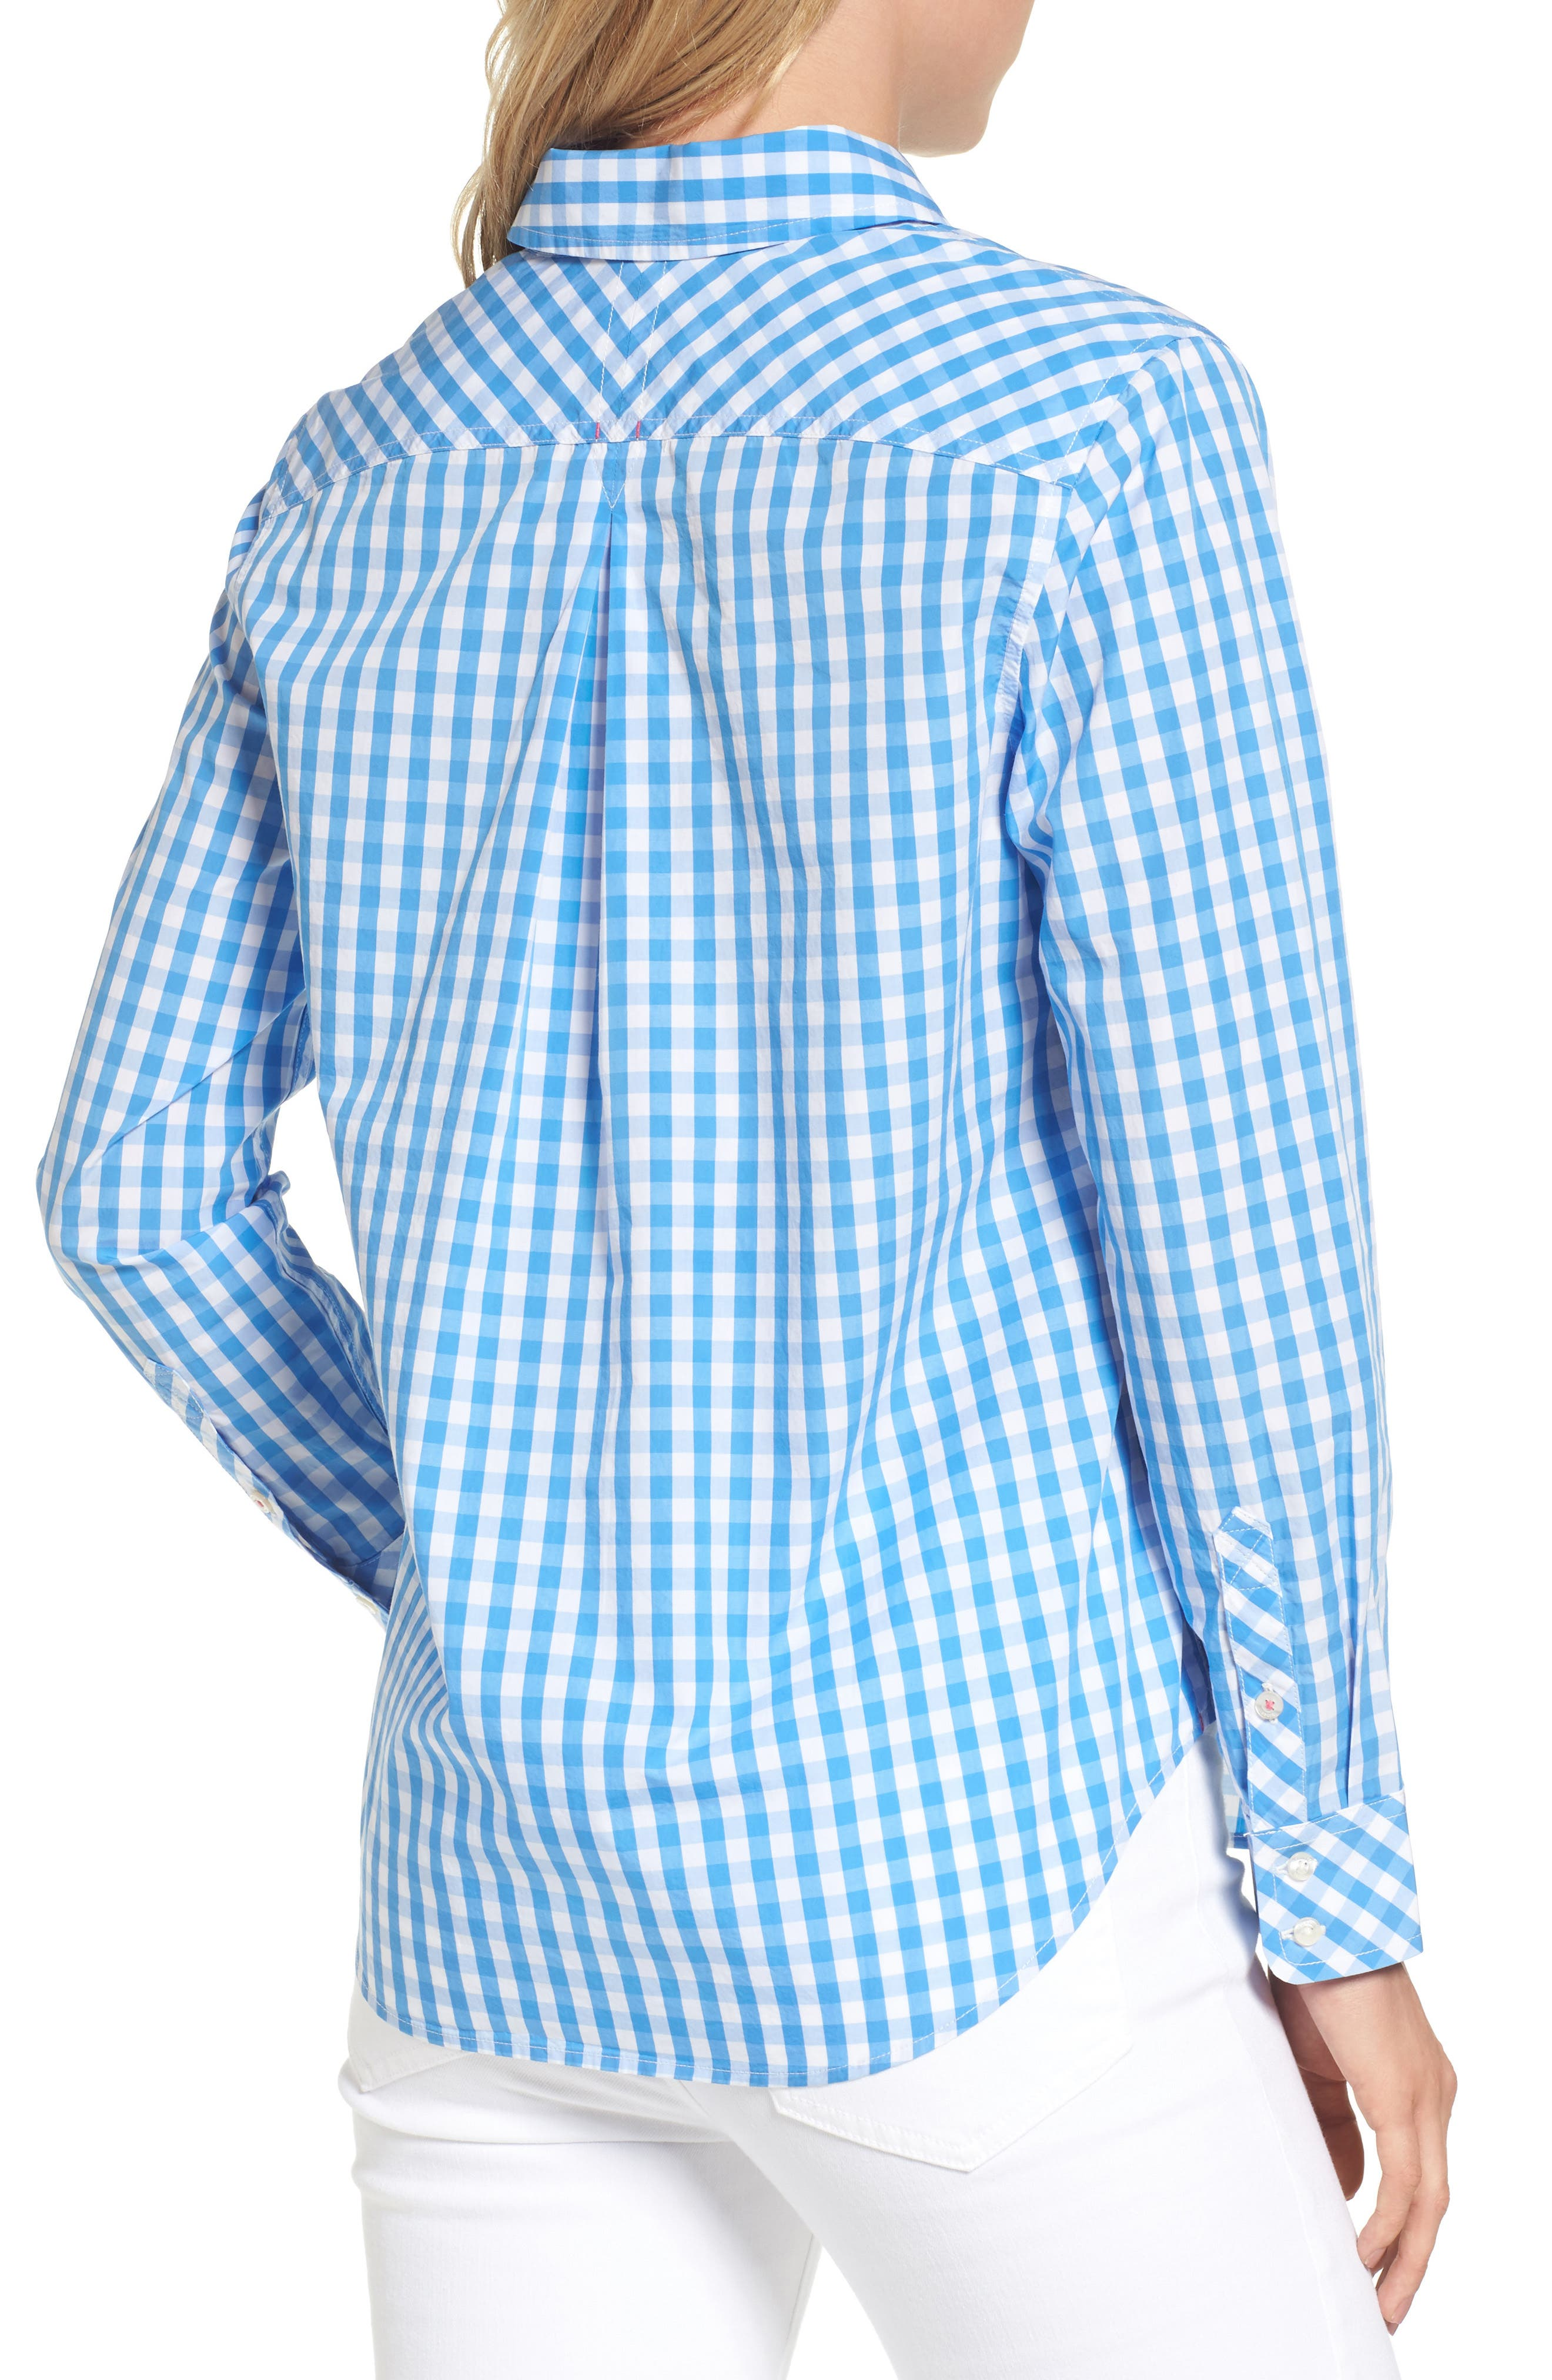 Seabreeze Gingham Pocket Shirt,                             Alternate thumbnail 2, color,                             464